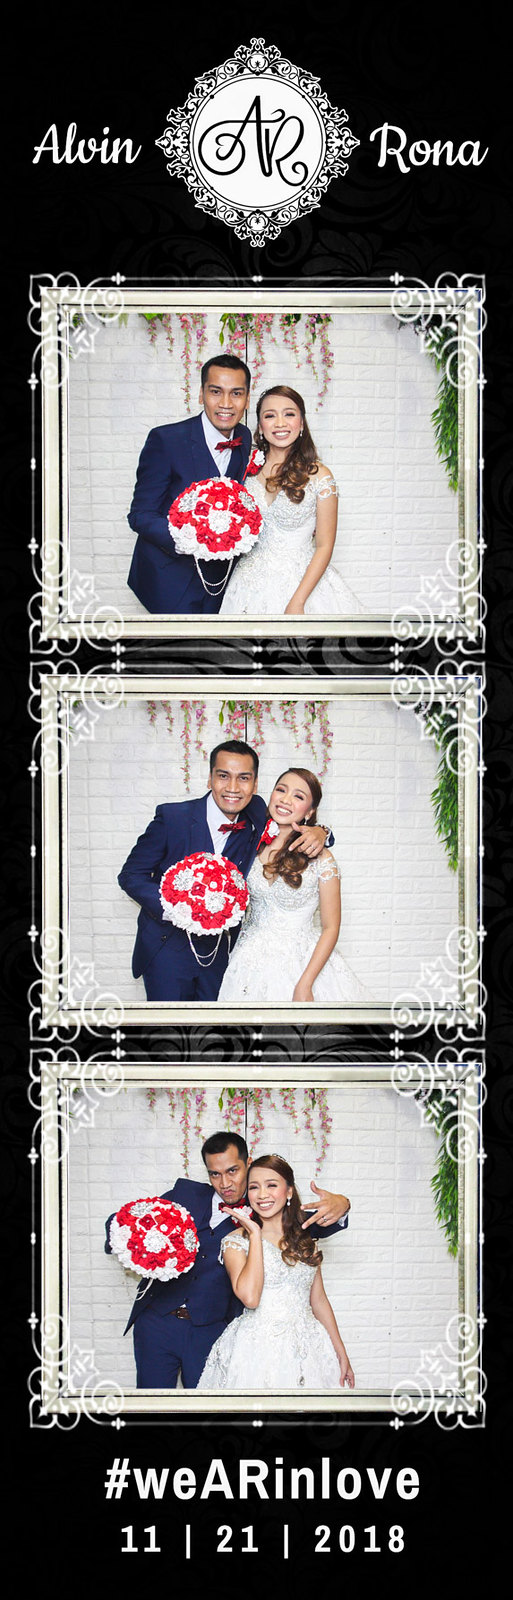 Alvin & Rona Wedding (Photo Strip)